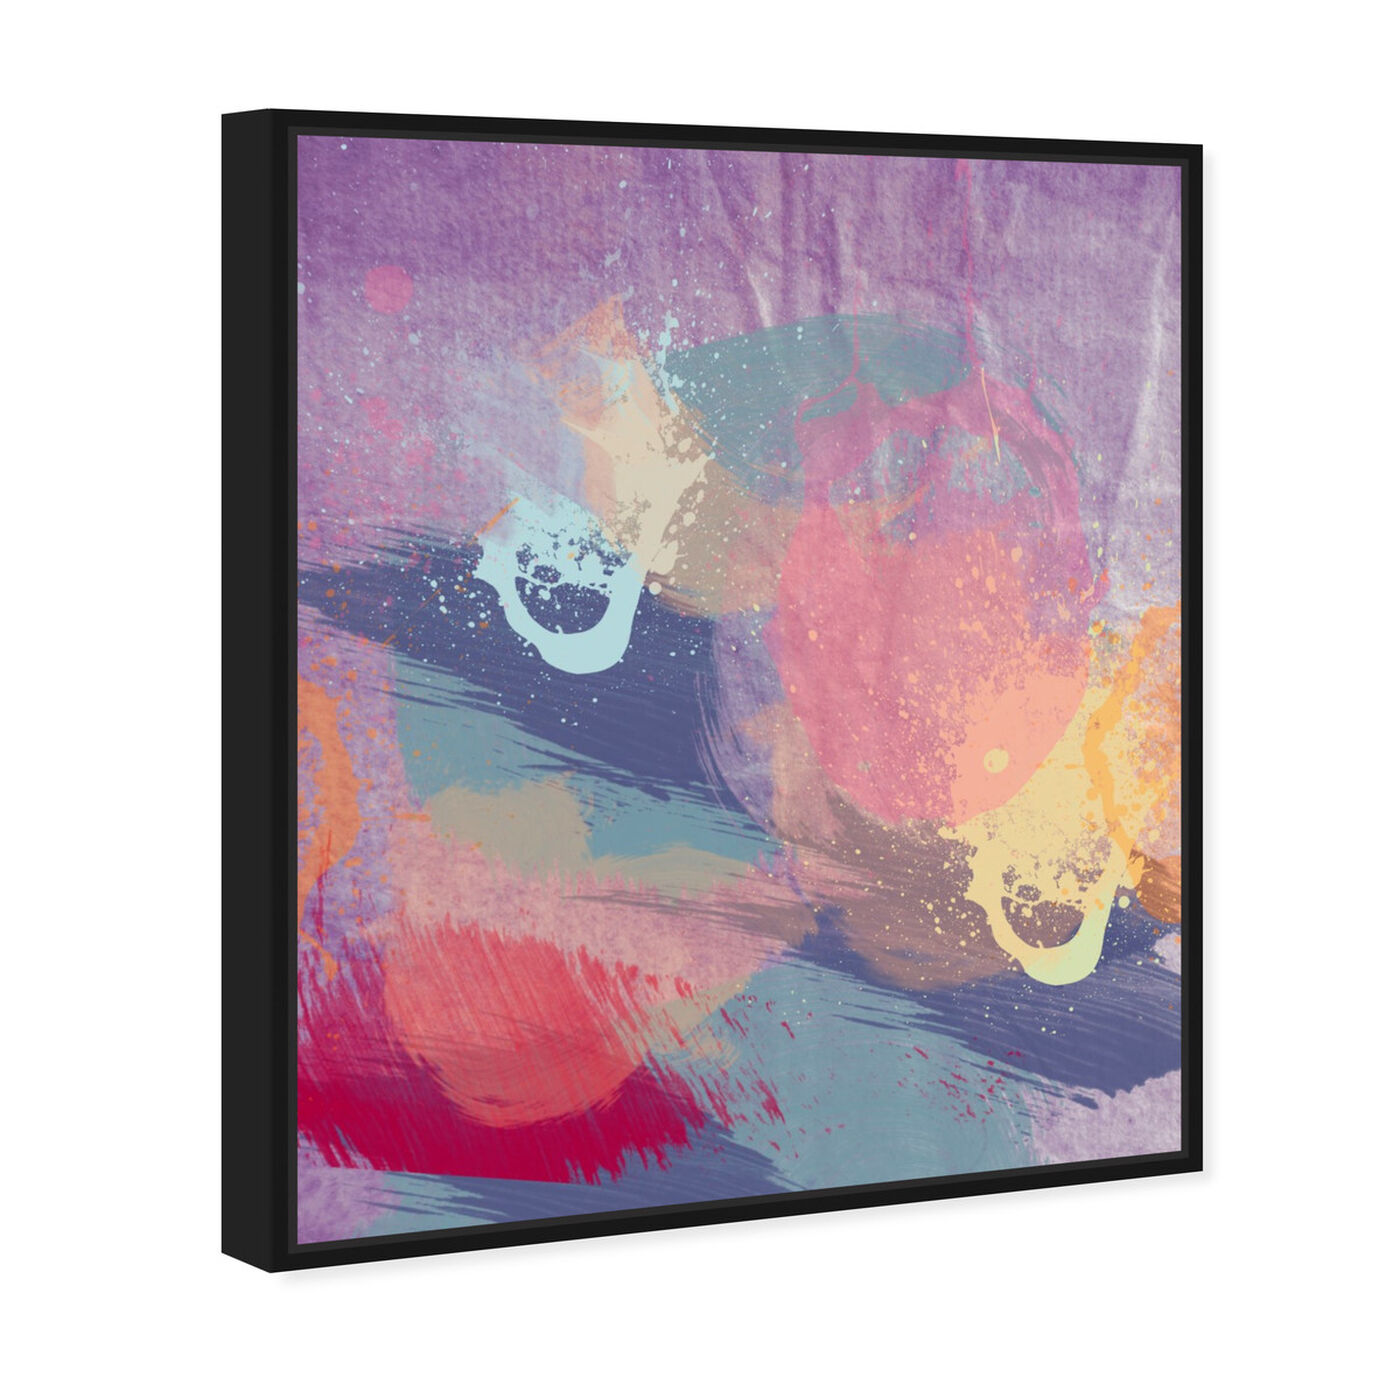 Angled view of Lavender Mist featuring abstract and paint art.